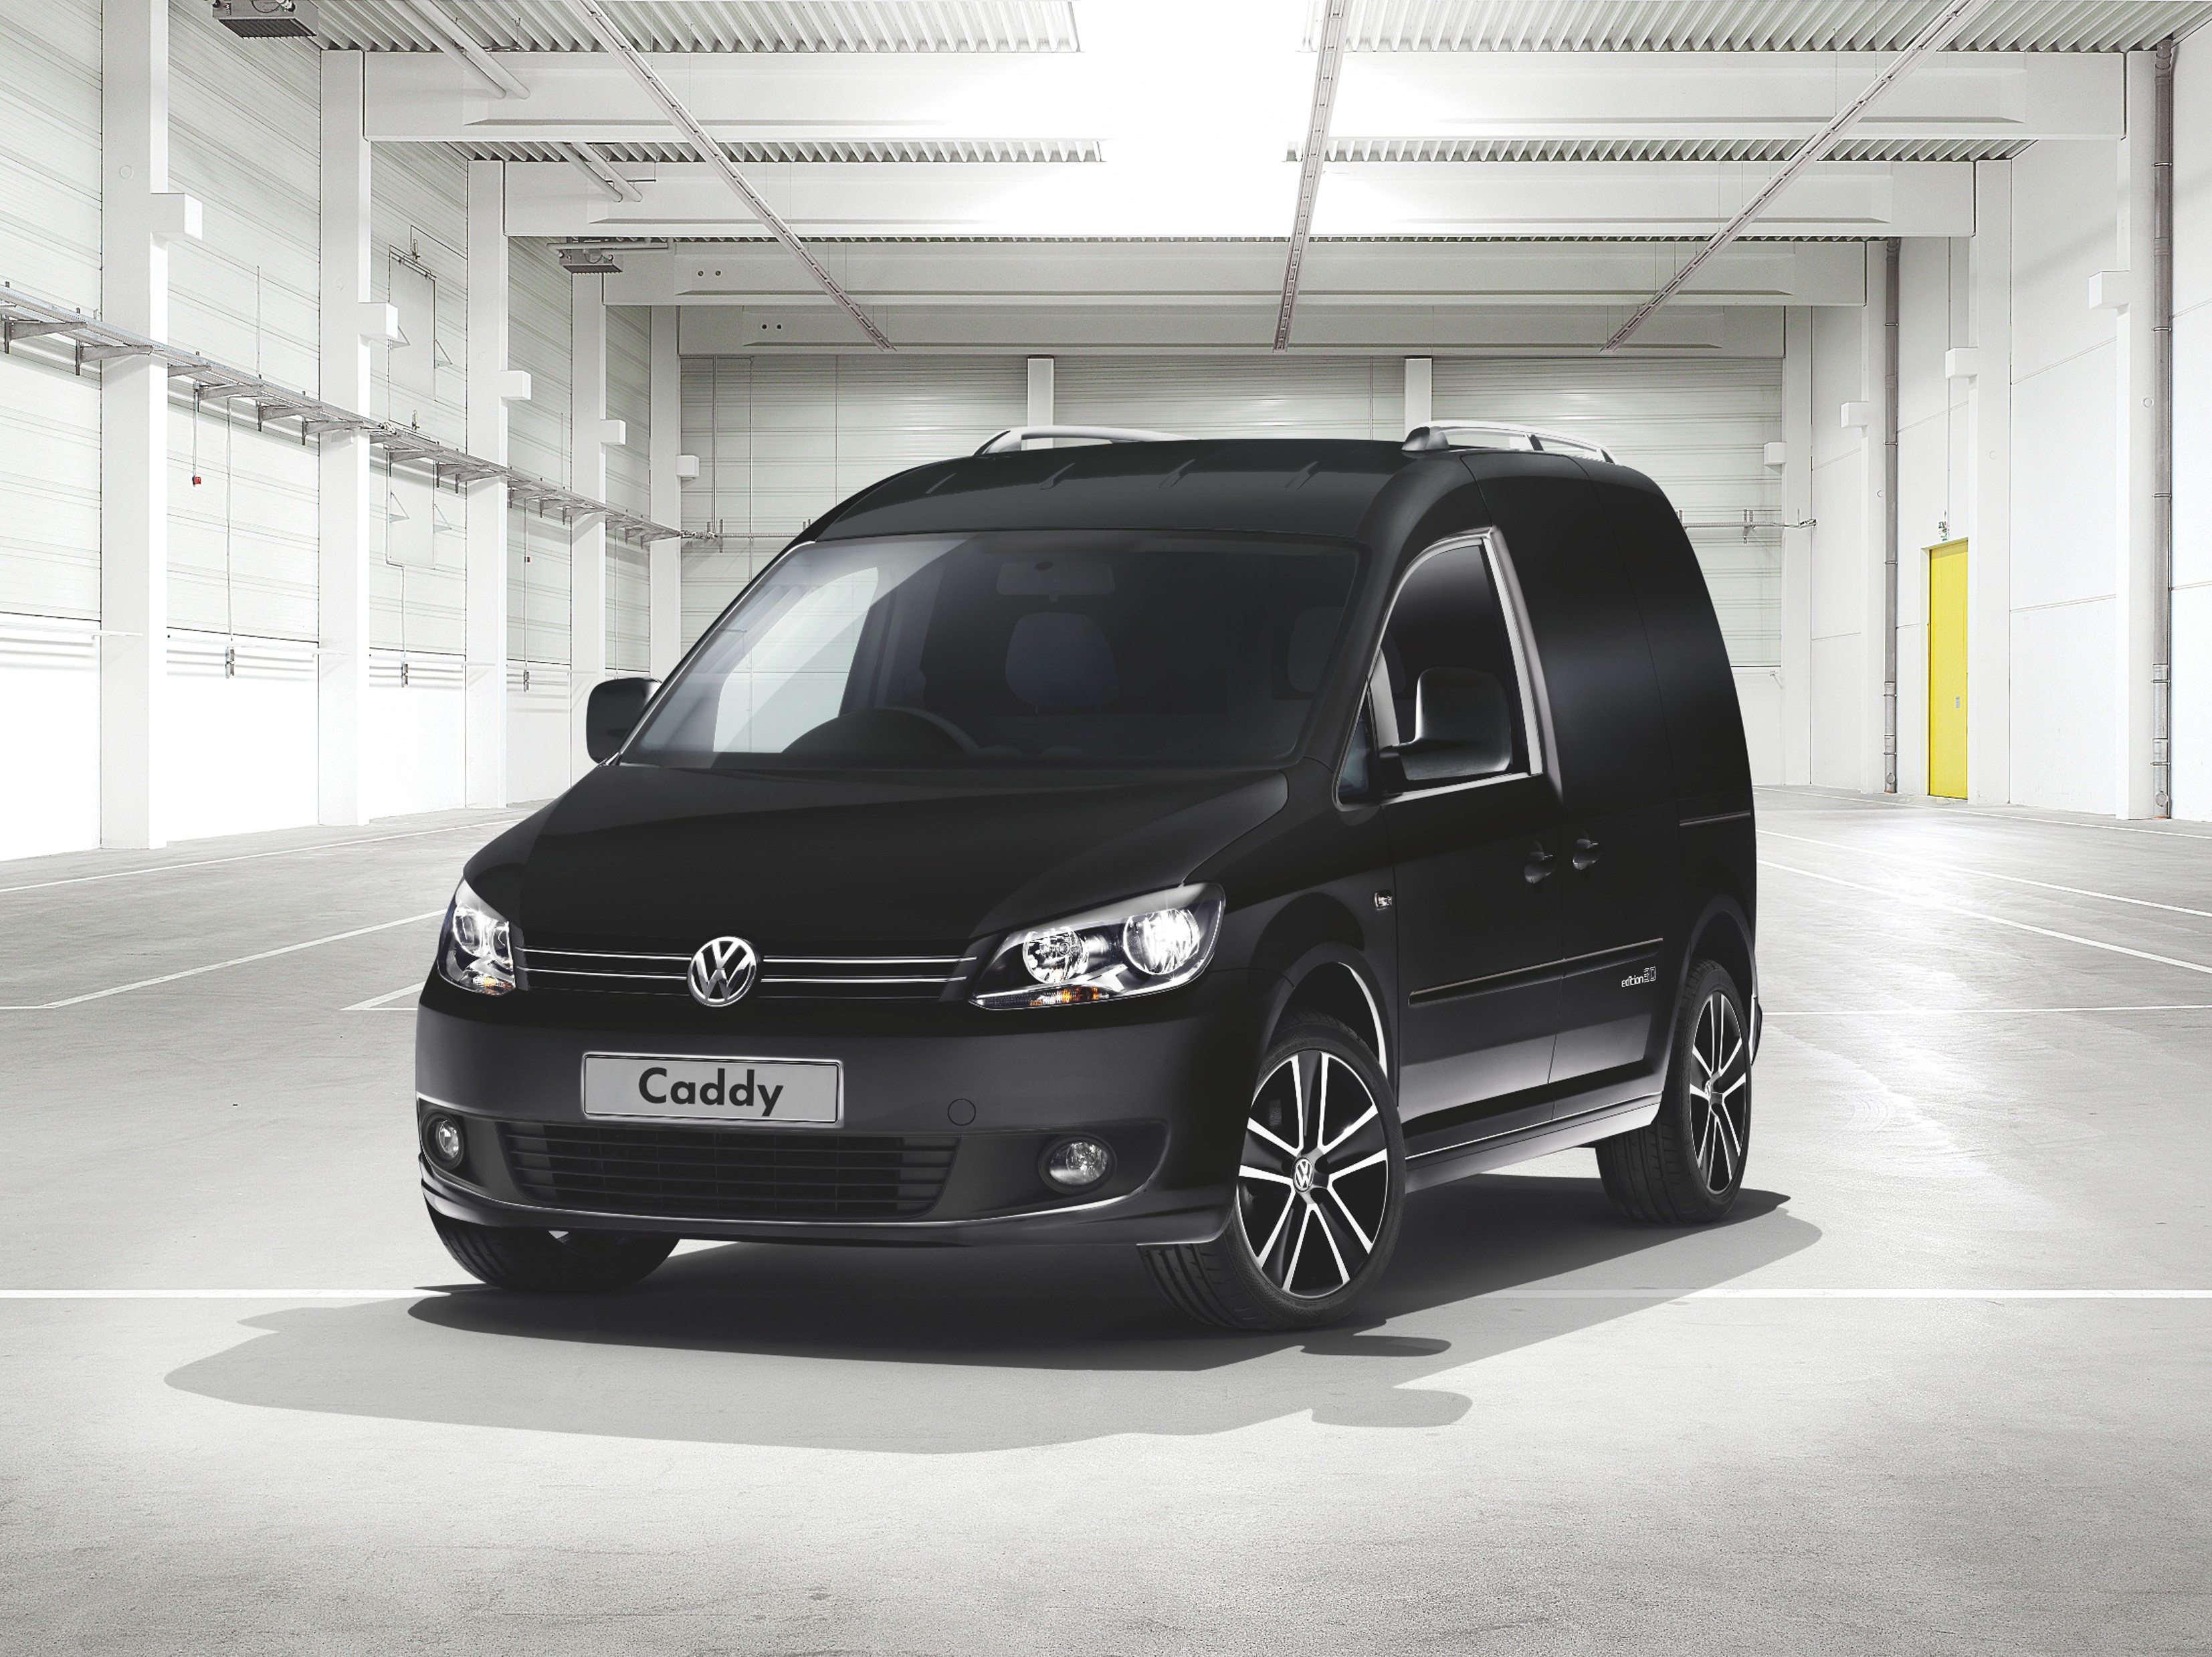 New Limited Edition Of The Vw Caddy Unveiled